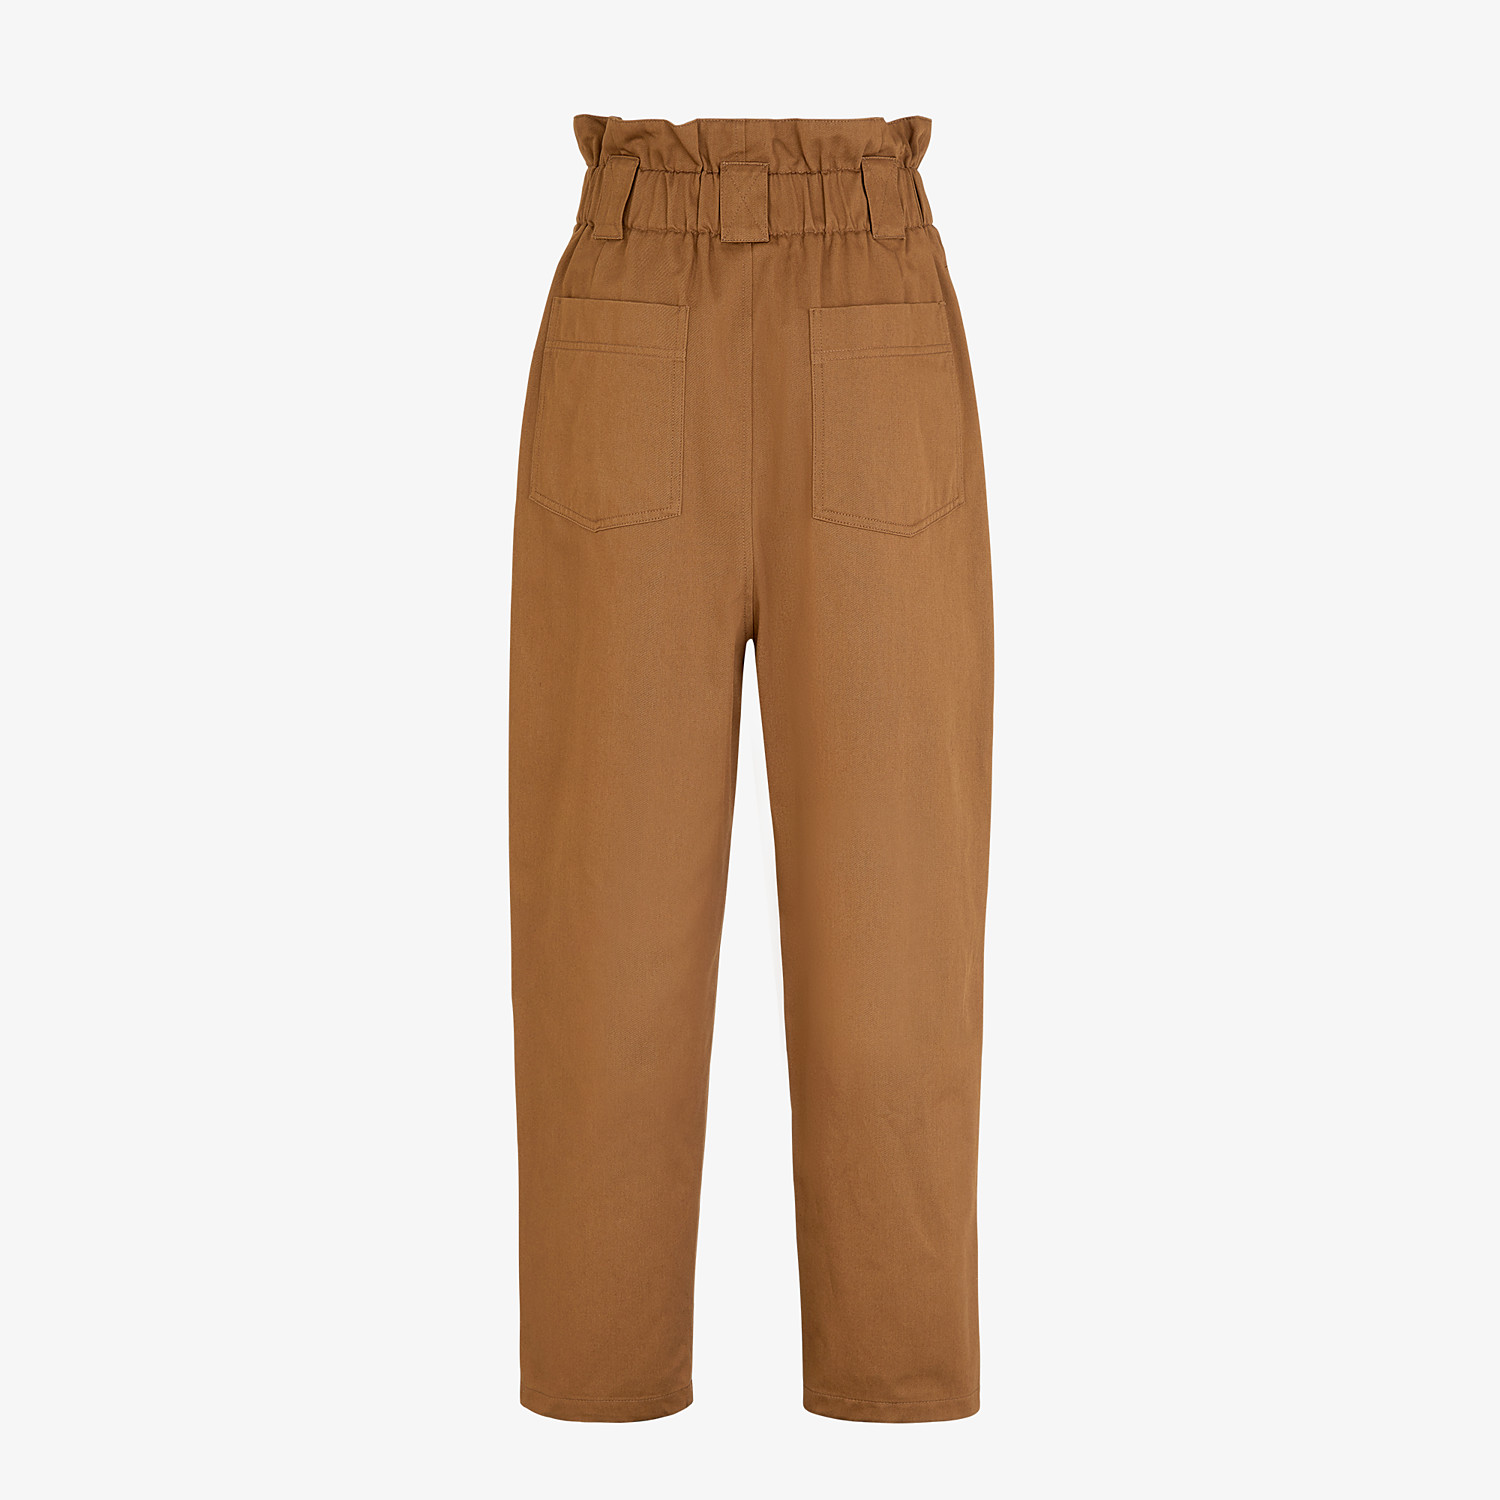 FENDI PANTS - Brown gabardine pants - view 2 detail